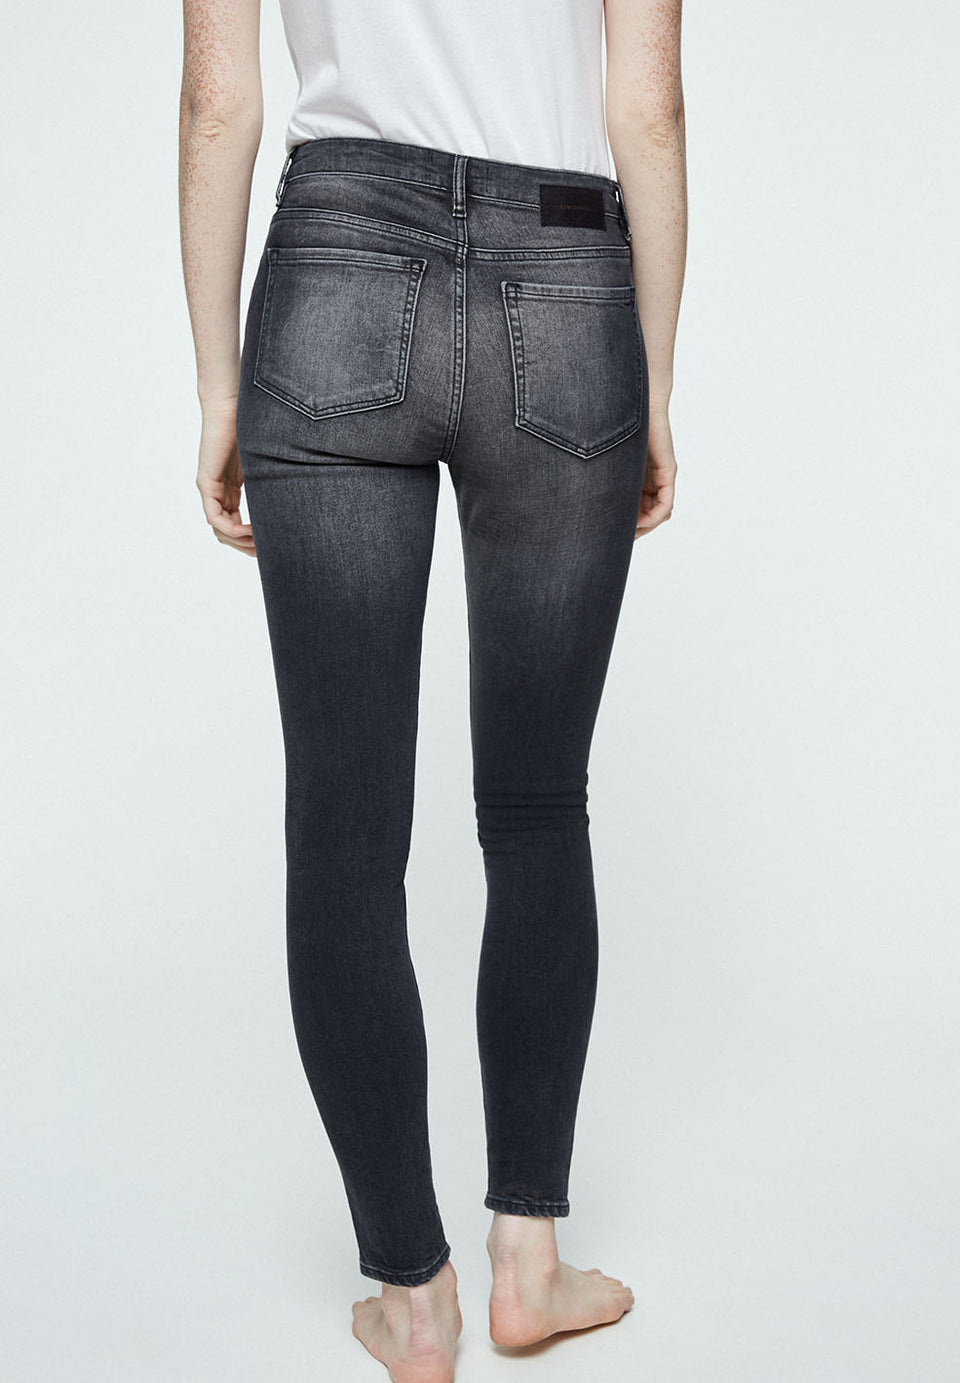 Tillaa Skinny Fit Mid Waist in Gray Wash